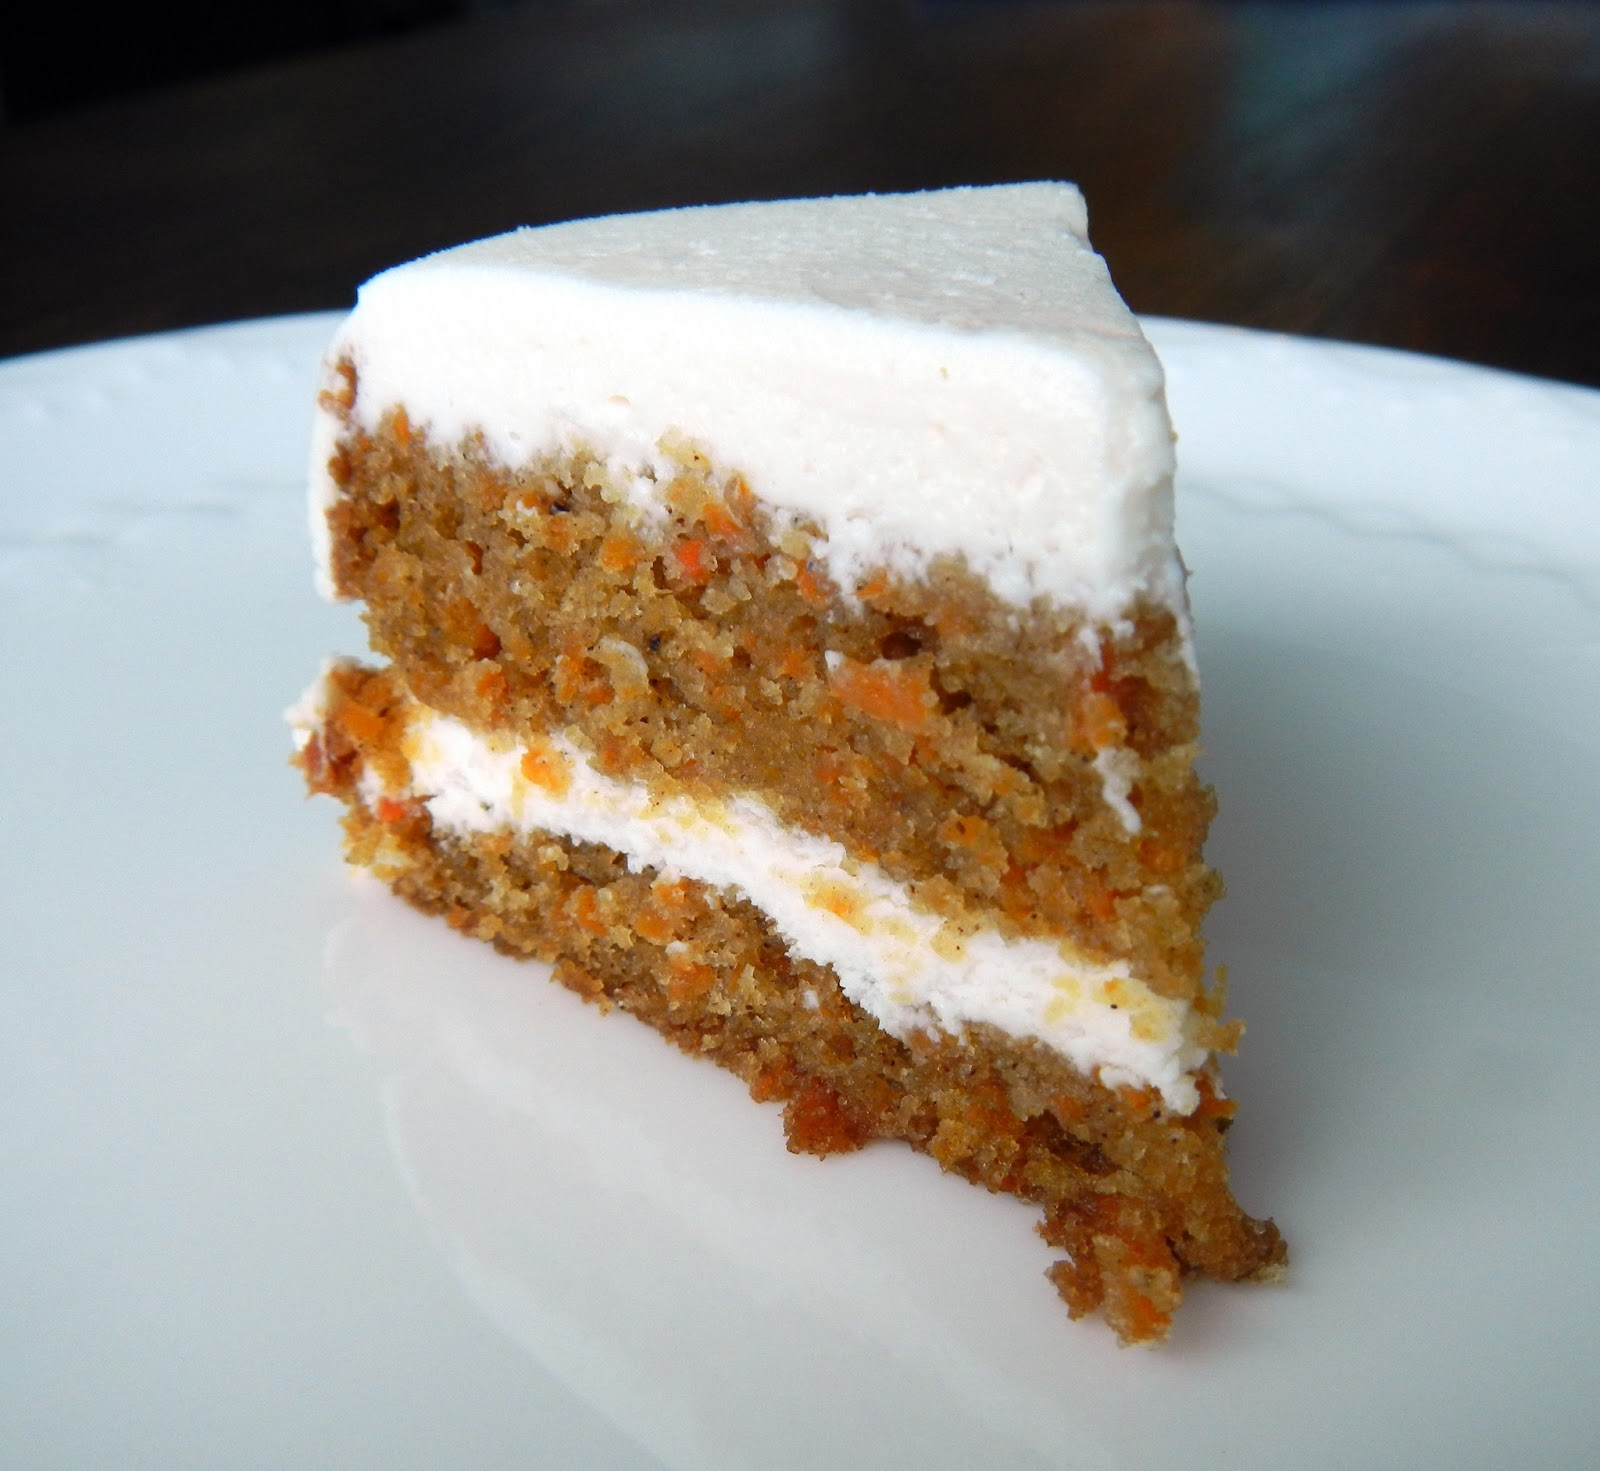 ... had an amazing carrot cake it was an unusual carrot cake because it